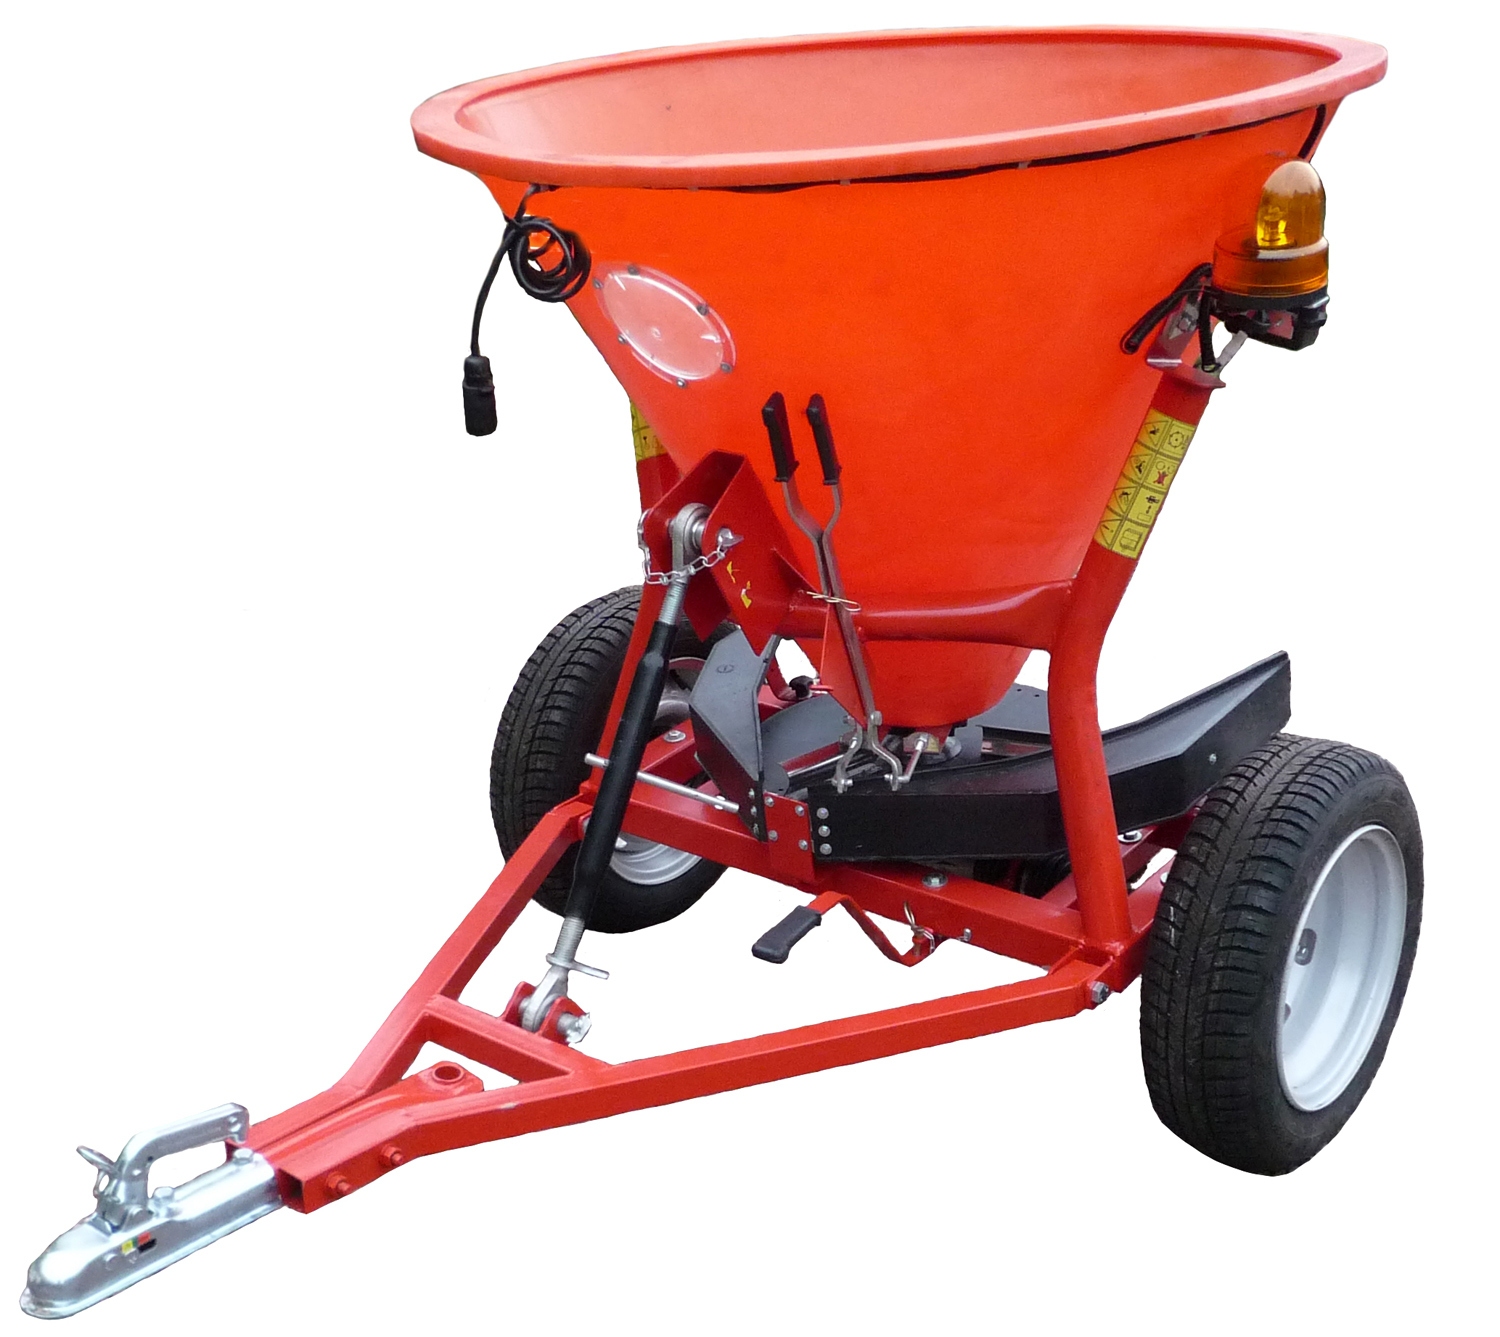 PROFESSIONAL SALT SPREADER 1/4 Ton capacity